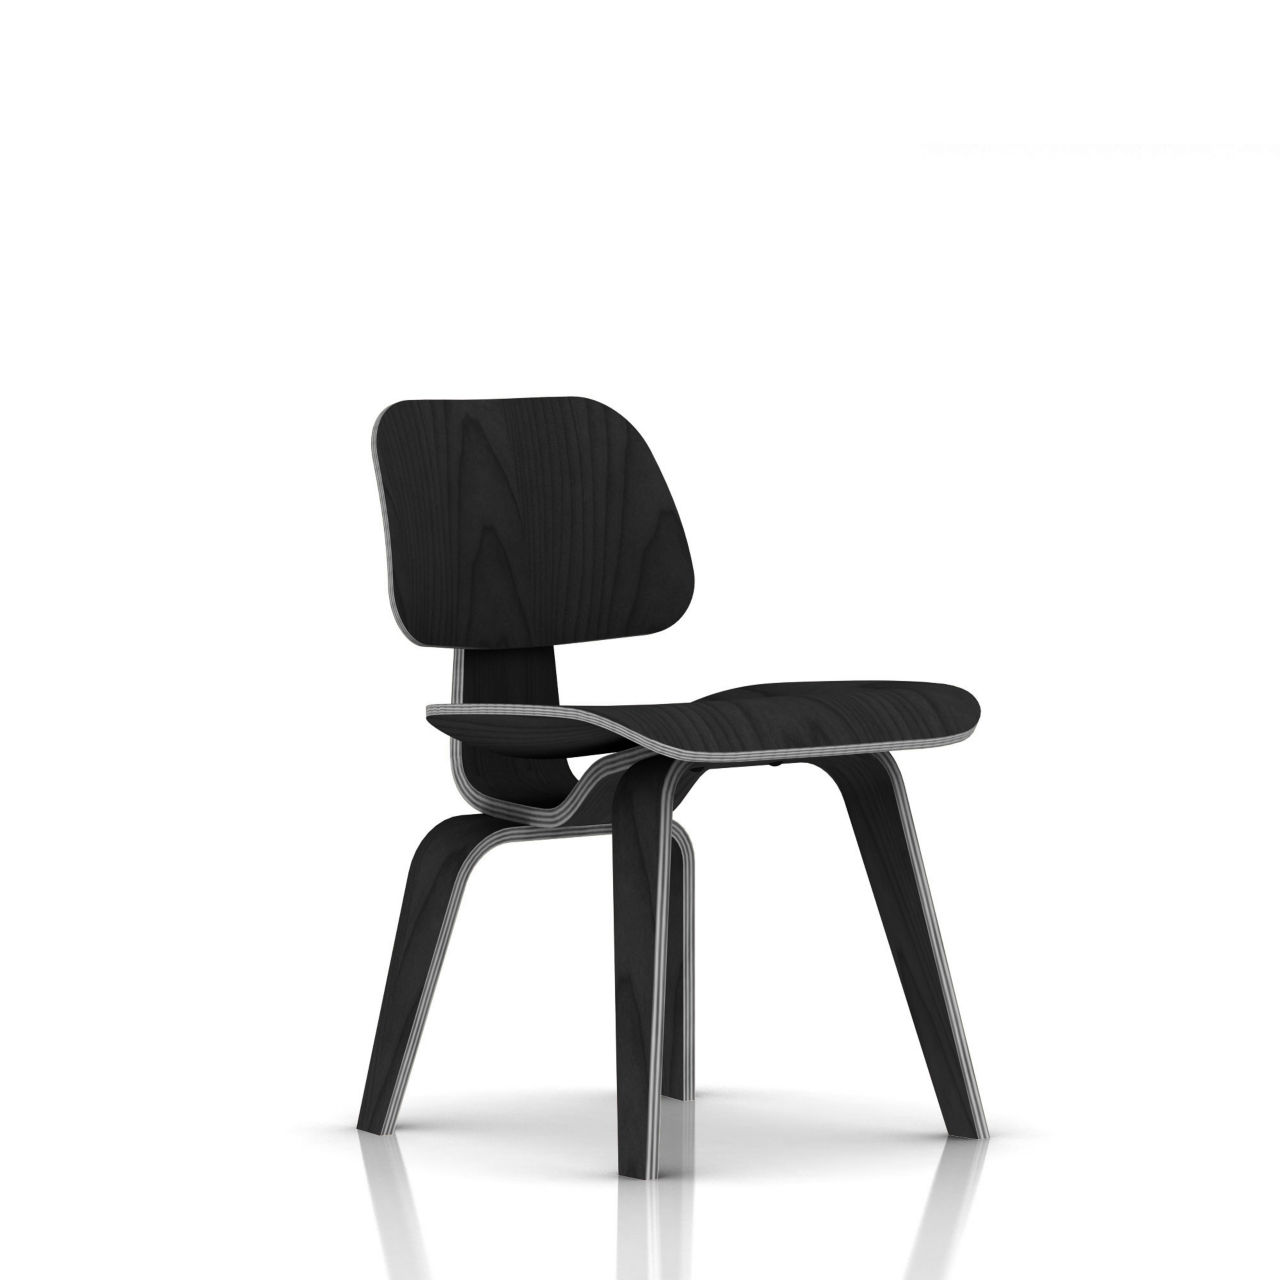 Eames Plywood Dining Chair in Ebony by Herman Miller